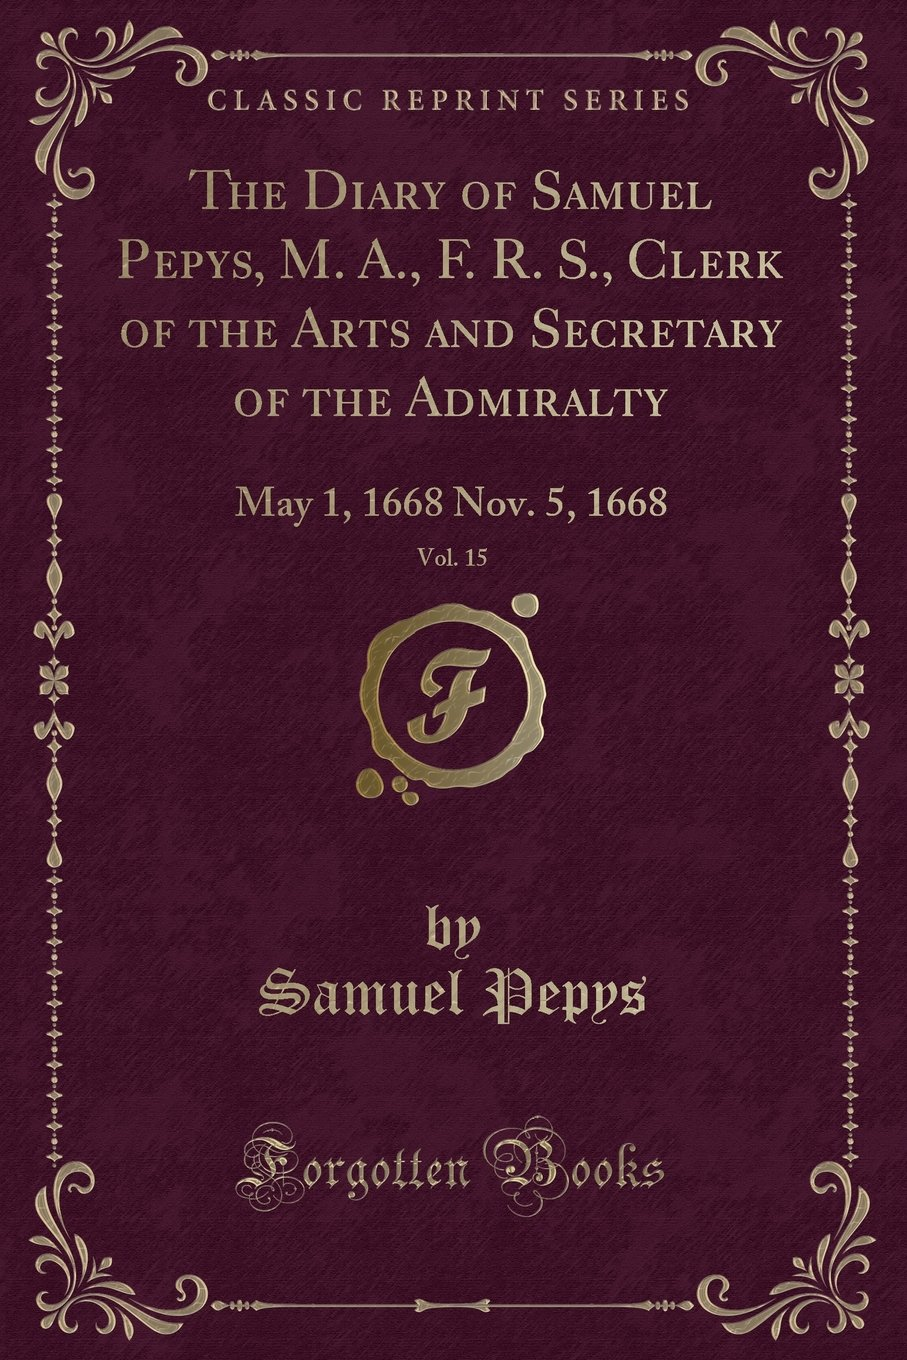 The Diary of Samuel Pepys, M. A., F. R. S., Clerk of the Arts and Secretary  of the Admiralty, Vol. 15: May 1, 1668 Nov. 5, 1668 (Classic Reprint):  Samuel ...